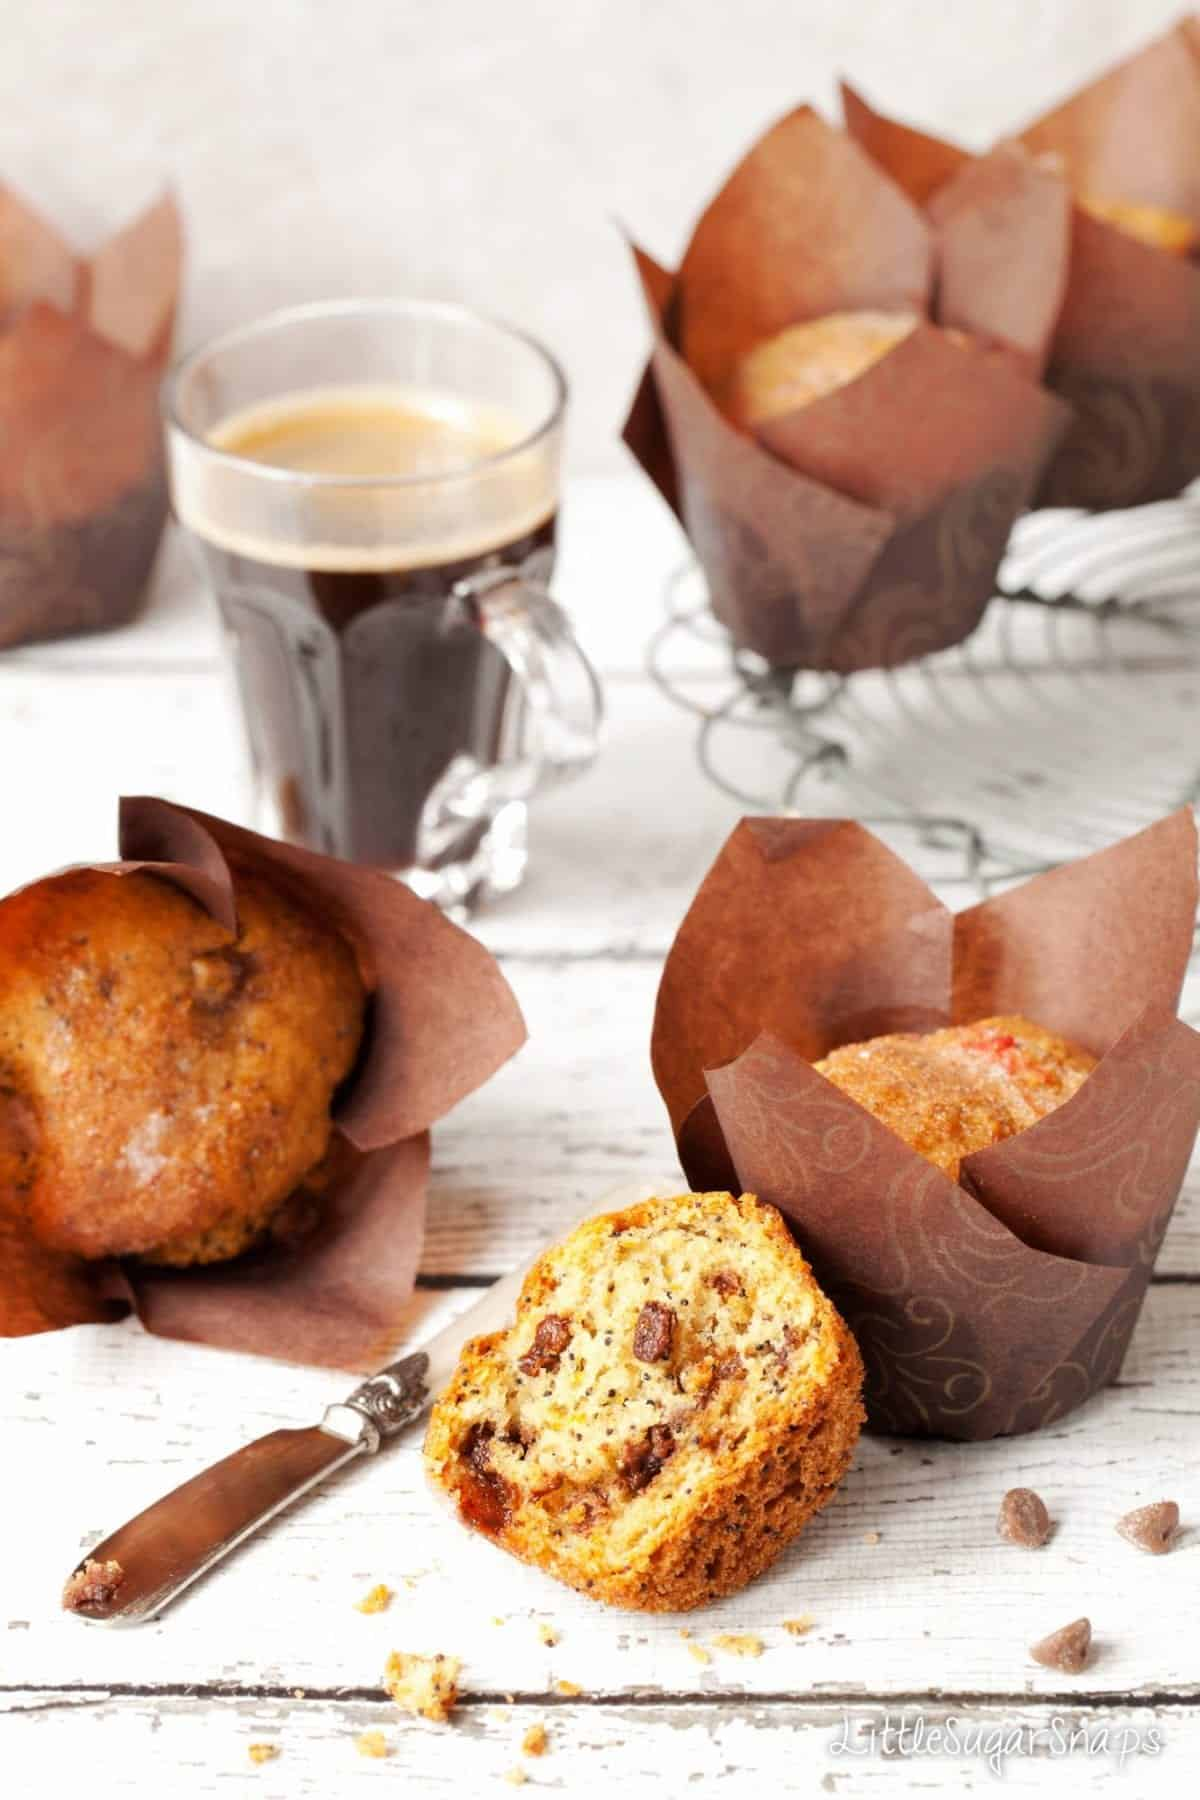 Chocolate orange muffins on a table with a cup of coffee.